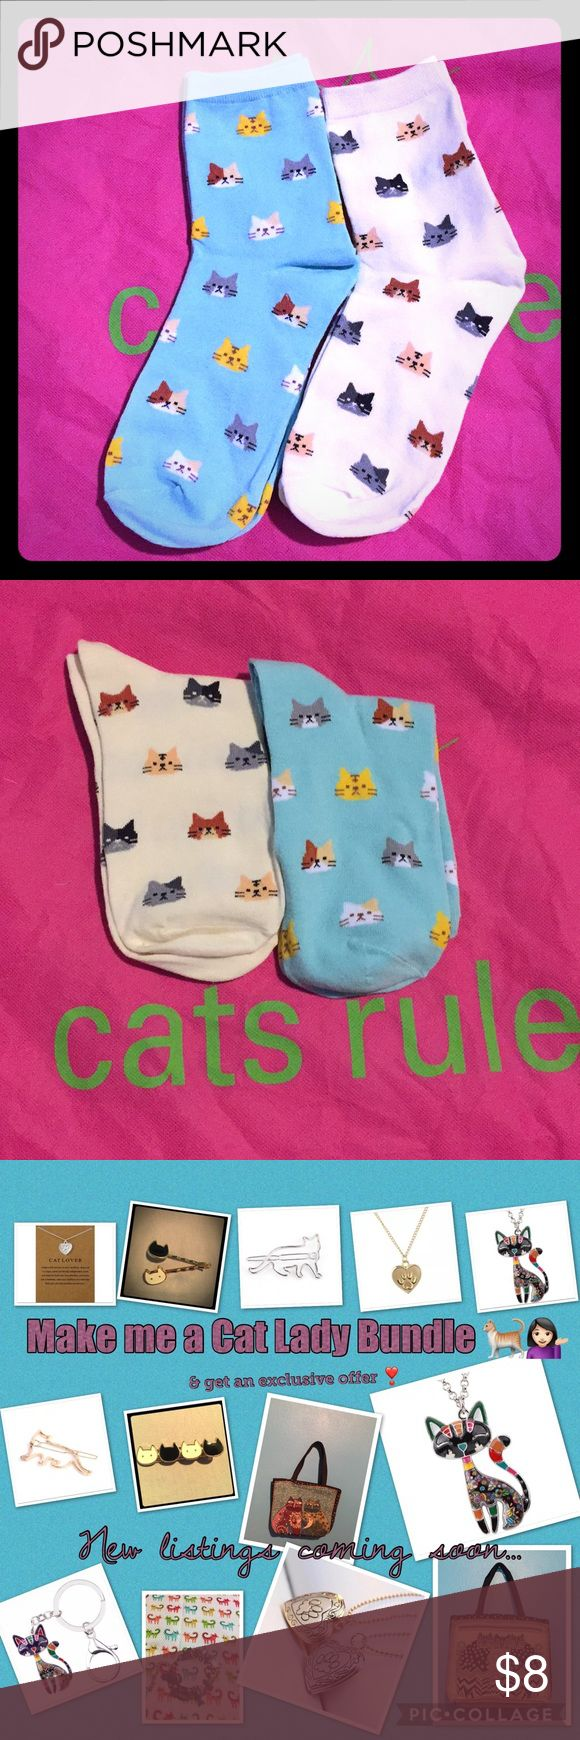 (2) pairs of cute cat socks 😸😺 NWOT | one size fits most | purrfect for the cat ladies💁🏻  Make a Cat Lady Bundle!! 😸😸😸 🛍🛍📦Add to bundle with any other cat item(s) & get an exclusive deal plus save on shipping! Accessories Hosiery & Socks